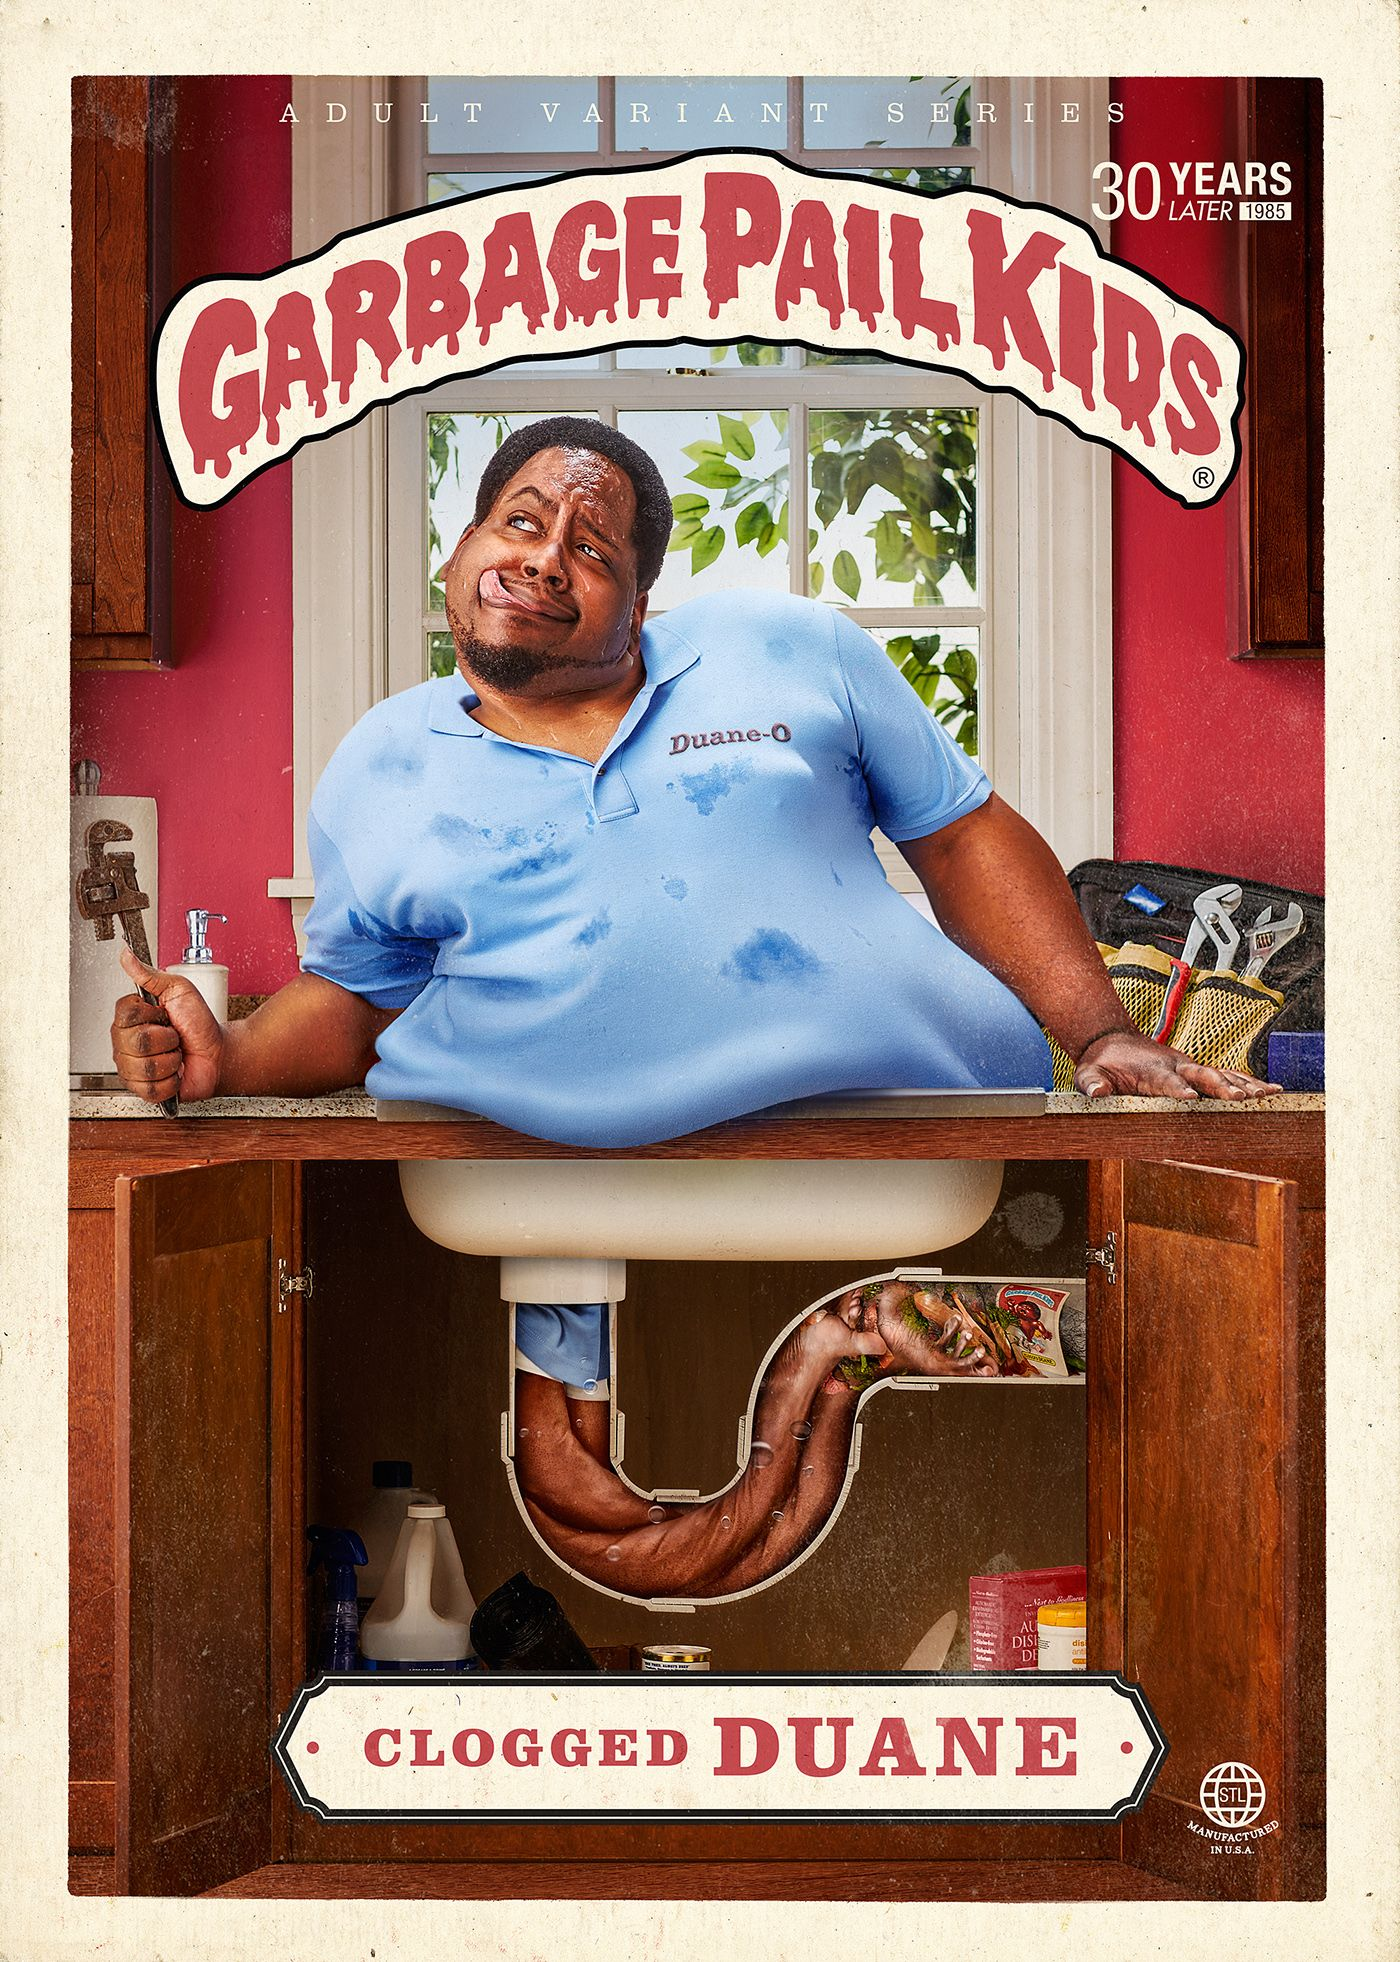 Garbage pail kids 30 years lateras real people in real